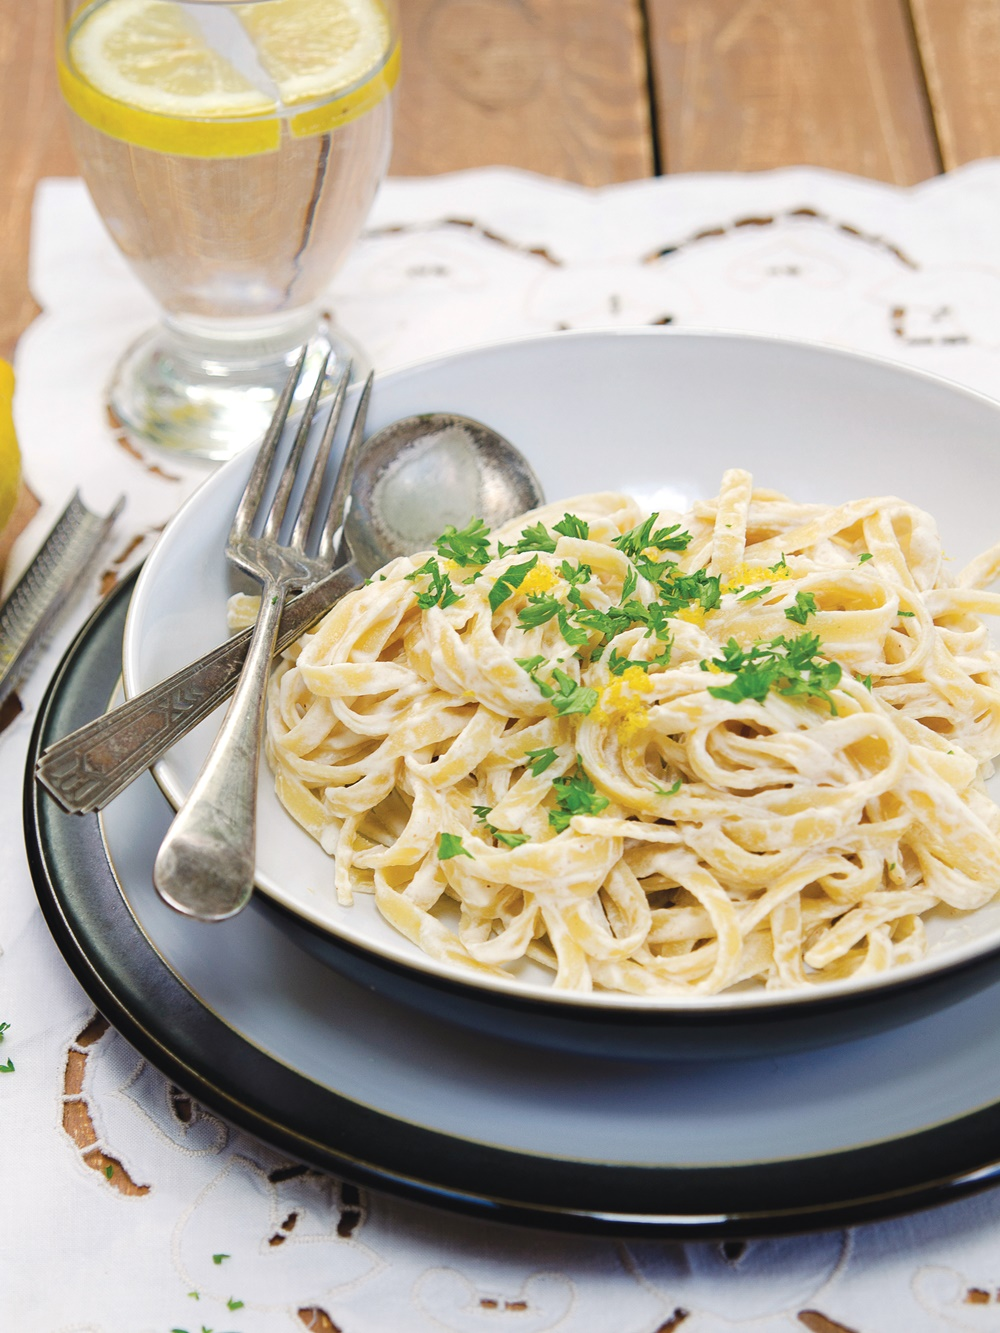 Creamy Vegan Fettuccine - Made with a luxurious, alfredo-like sauce that can be whipped up in your blender in minutes! Dairy-free recipe, includes gluten-free and soy-free options.